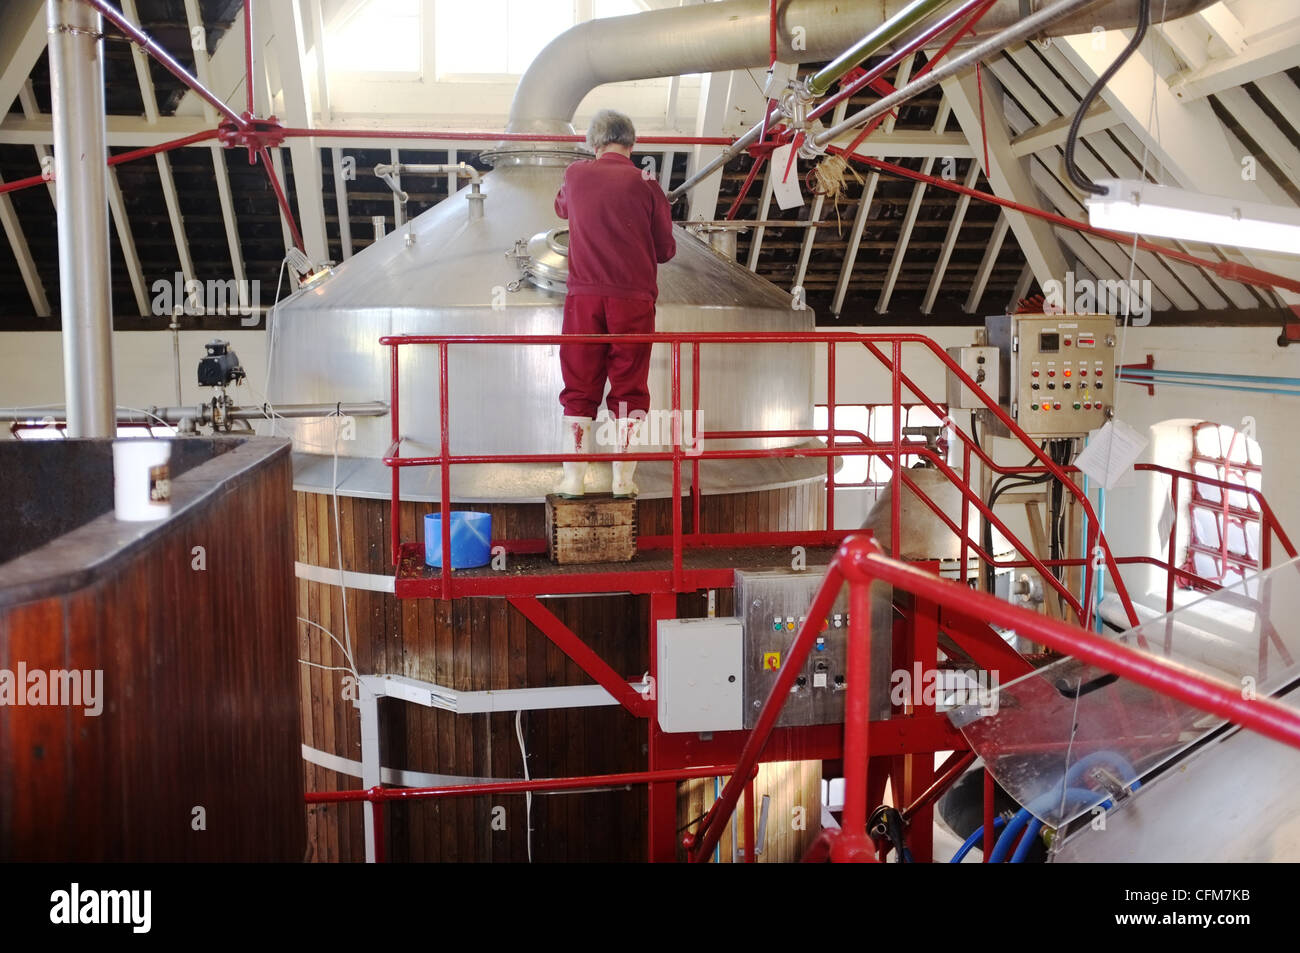 Hook Norton Brewery Interior Cleaning of Fermentation Vat - Stock Image